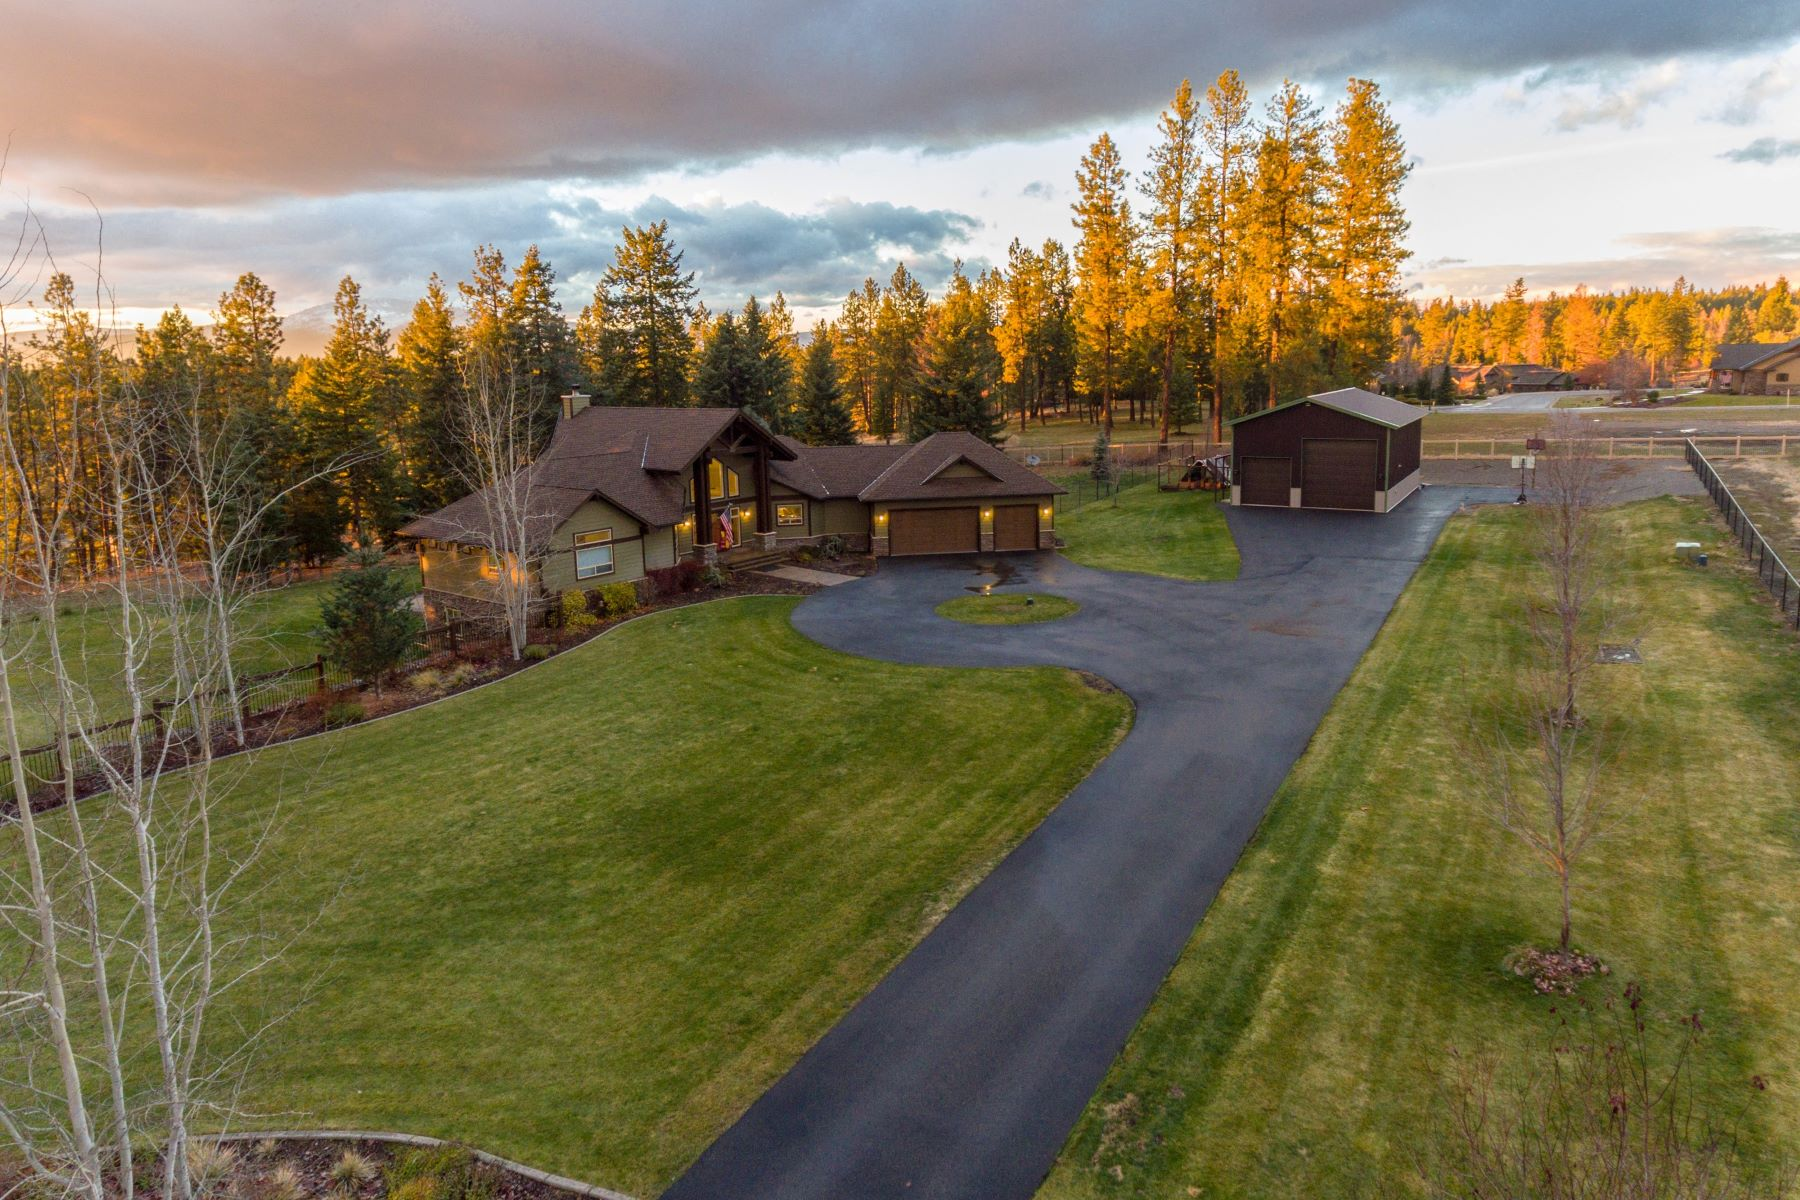 Maison unifamiliale pour l à vendre à Spectacular Private Home on 2.5 Acres 1285 E Starling Meadows Ct, Hayden, Idaho, 83835 États-Unis